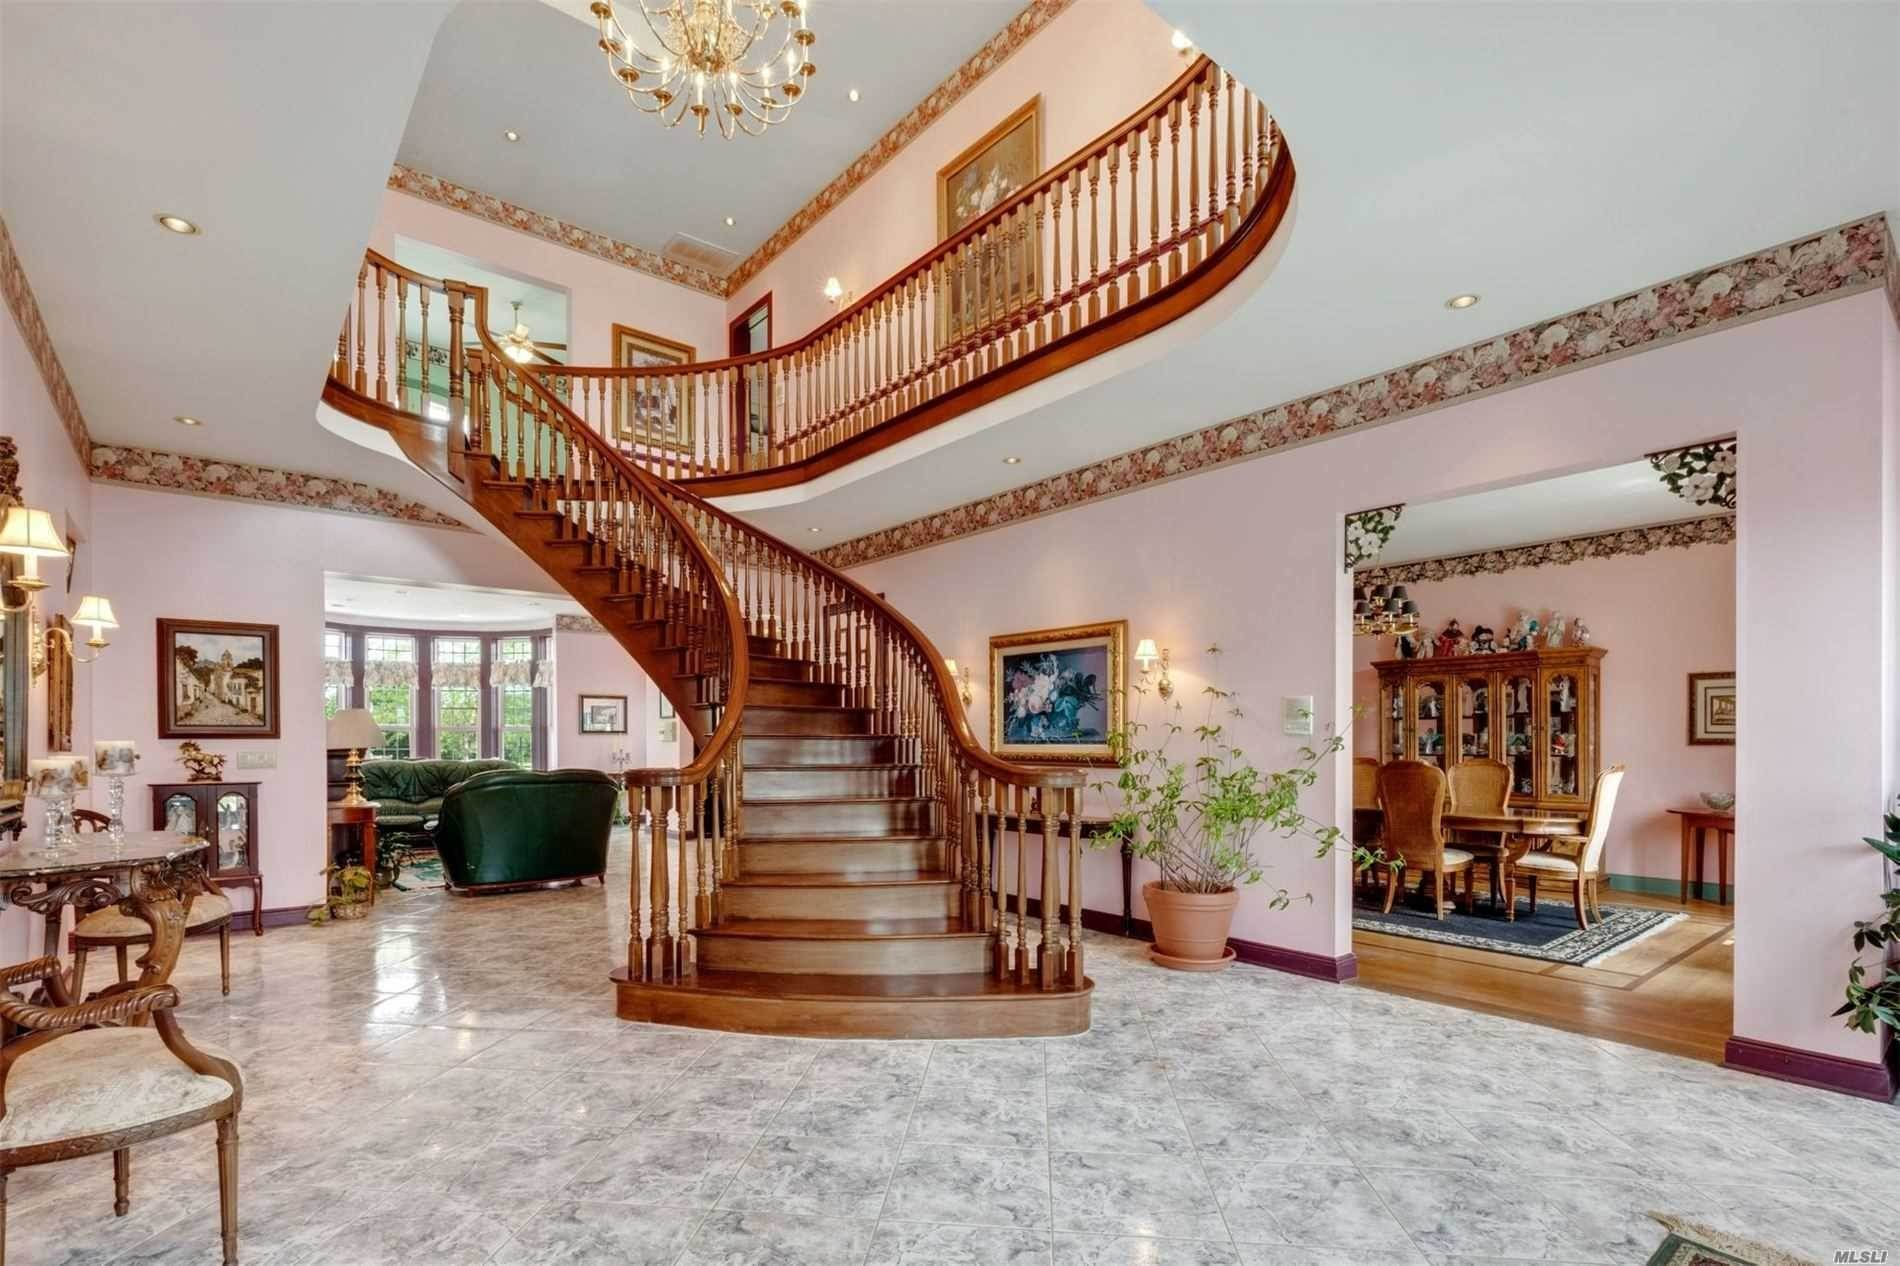 6. Single Family Home for Sale at Manorville,NY,United States Manorville, New York,11949 United States